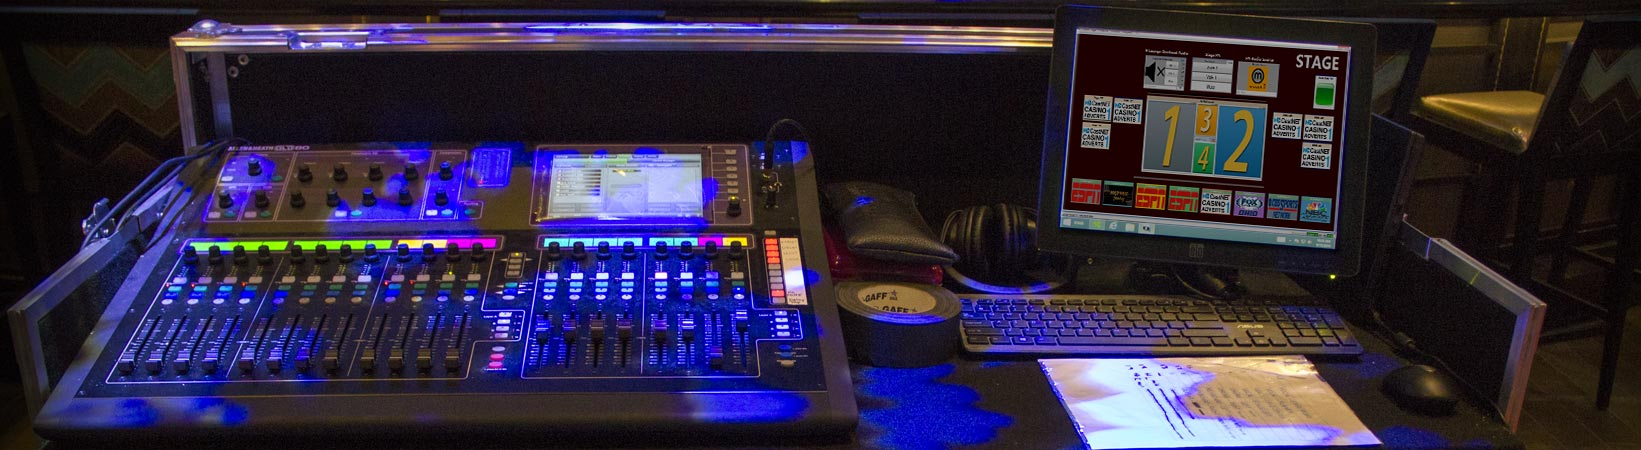 Mahoning Valley Stage AV Control